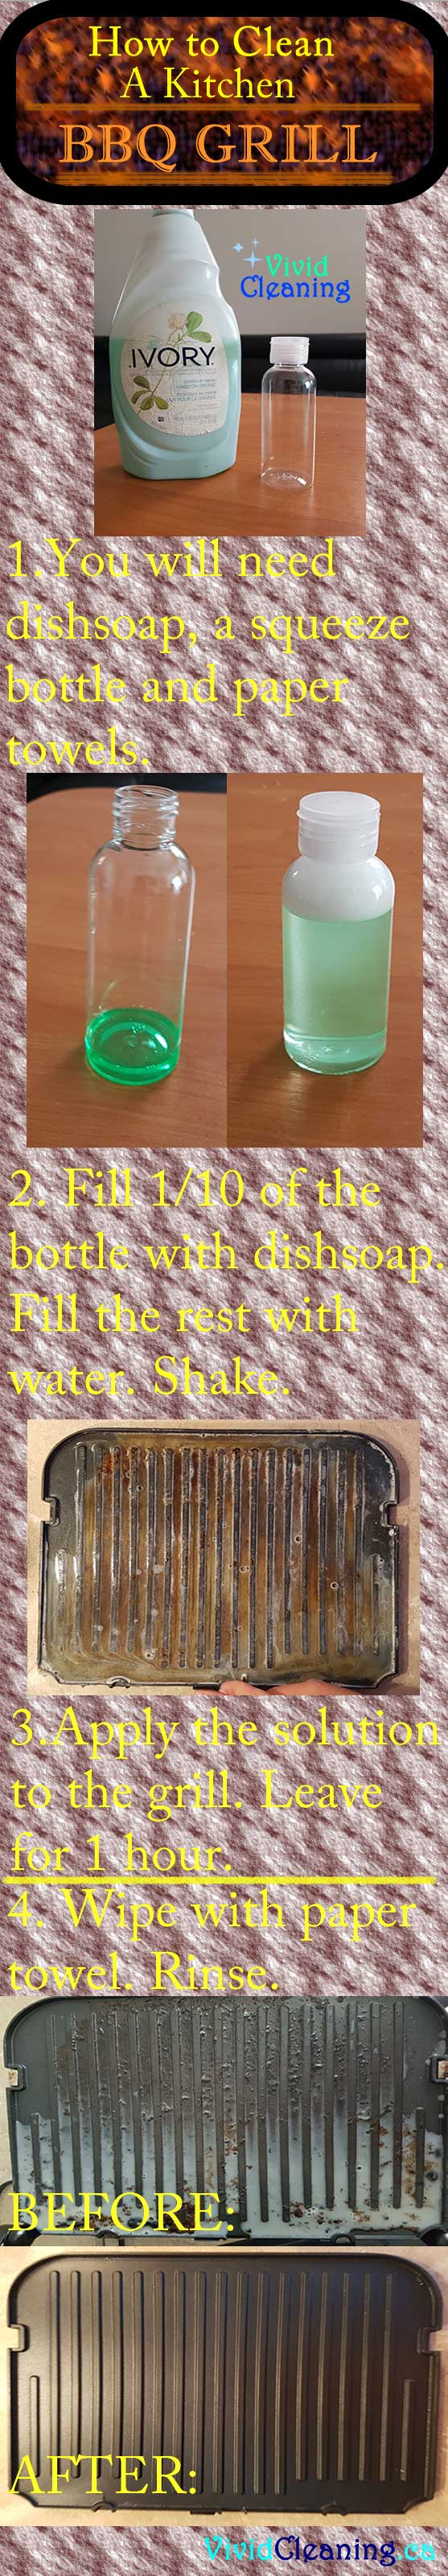 You will need liquid dish soap, a squeeze bottle, and paper towels. Put 1/10th or 10 ml of liquid soap in the squeeze bottle. Fill the rest of the bottle with water. Shake up the contents. You can choose to wipe some of the grease off the bbq grill using paper towels. You can apply the soap solution even if you choose not to wipe off the extra grease.